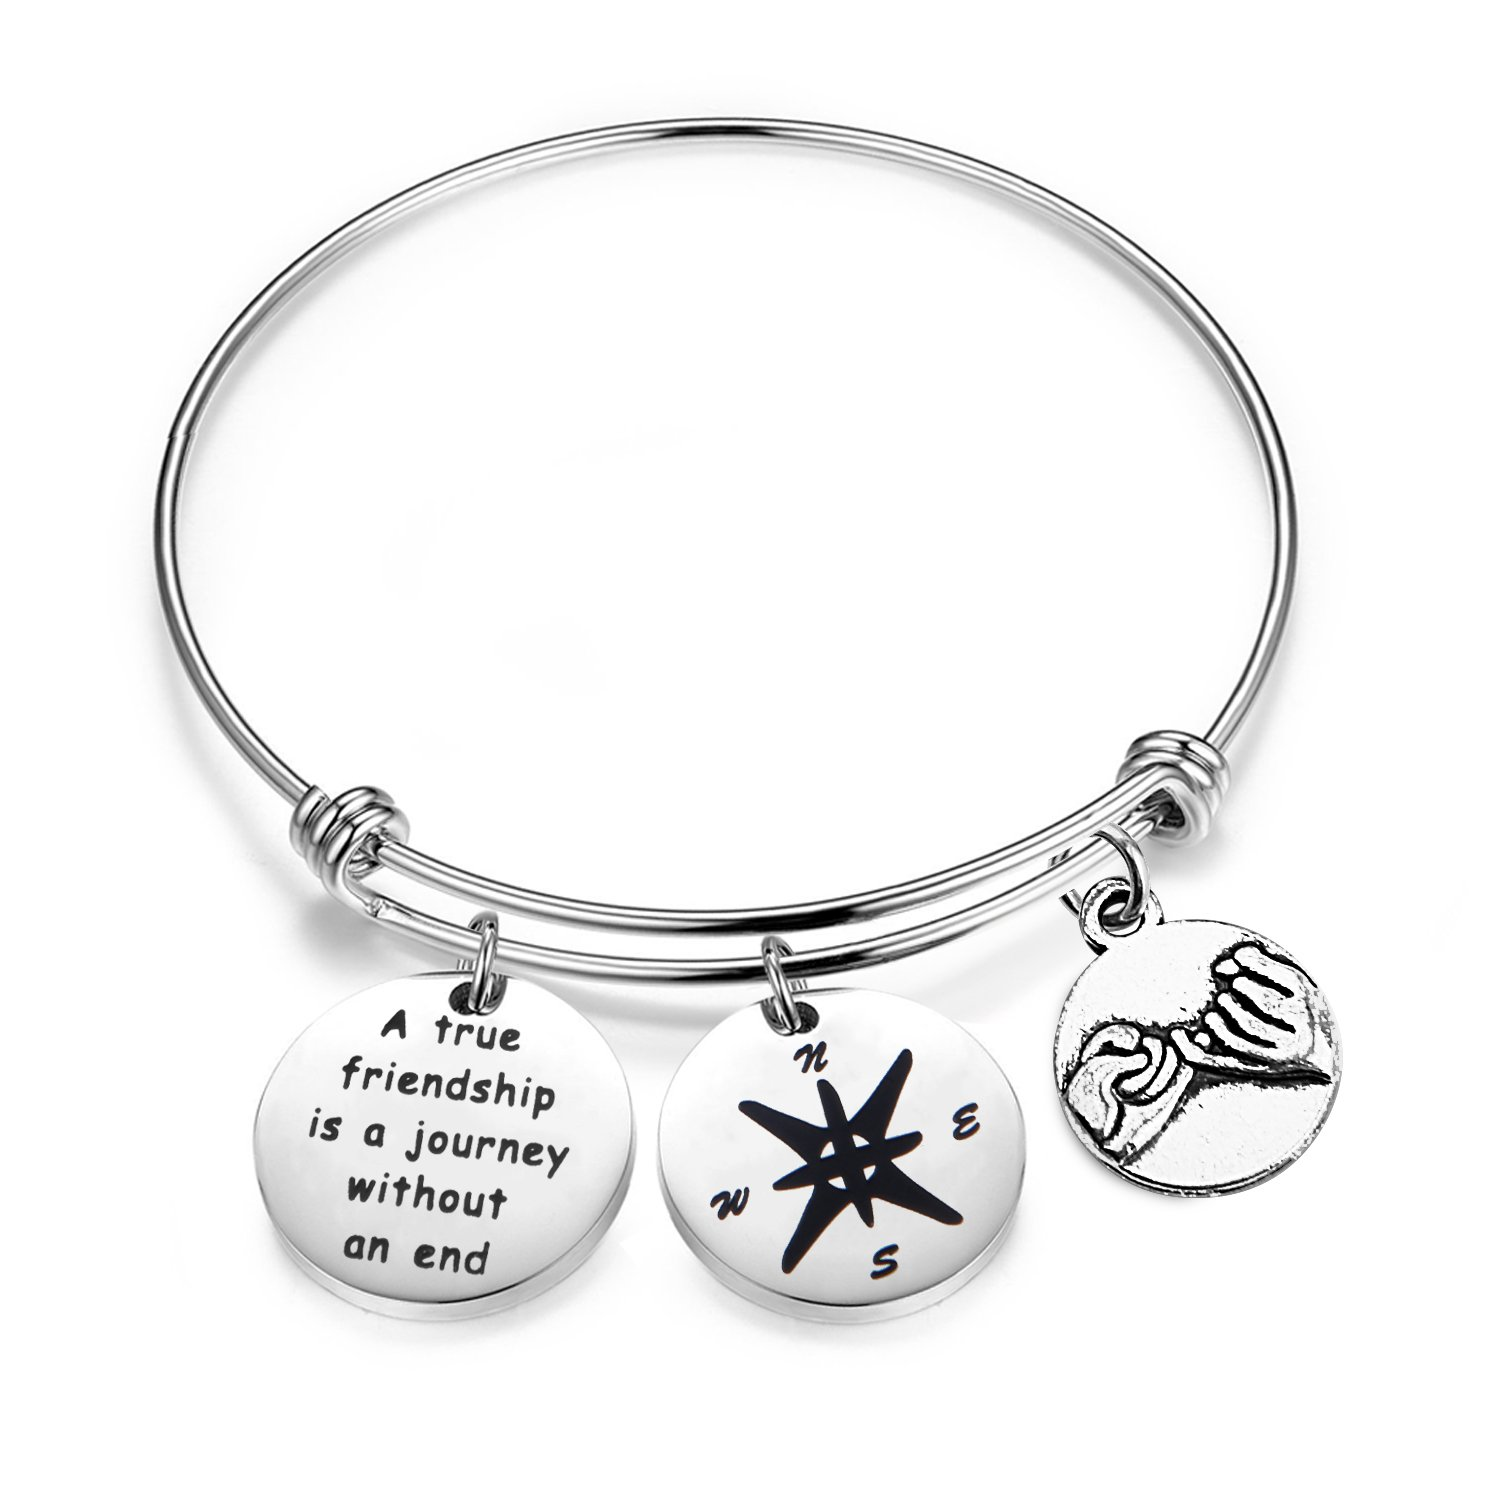 bobauna A True Friendship is A Journey Without an End Bracelet with Compass Pinky Promise Charms Best Friend Gift